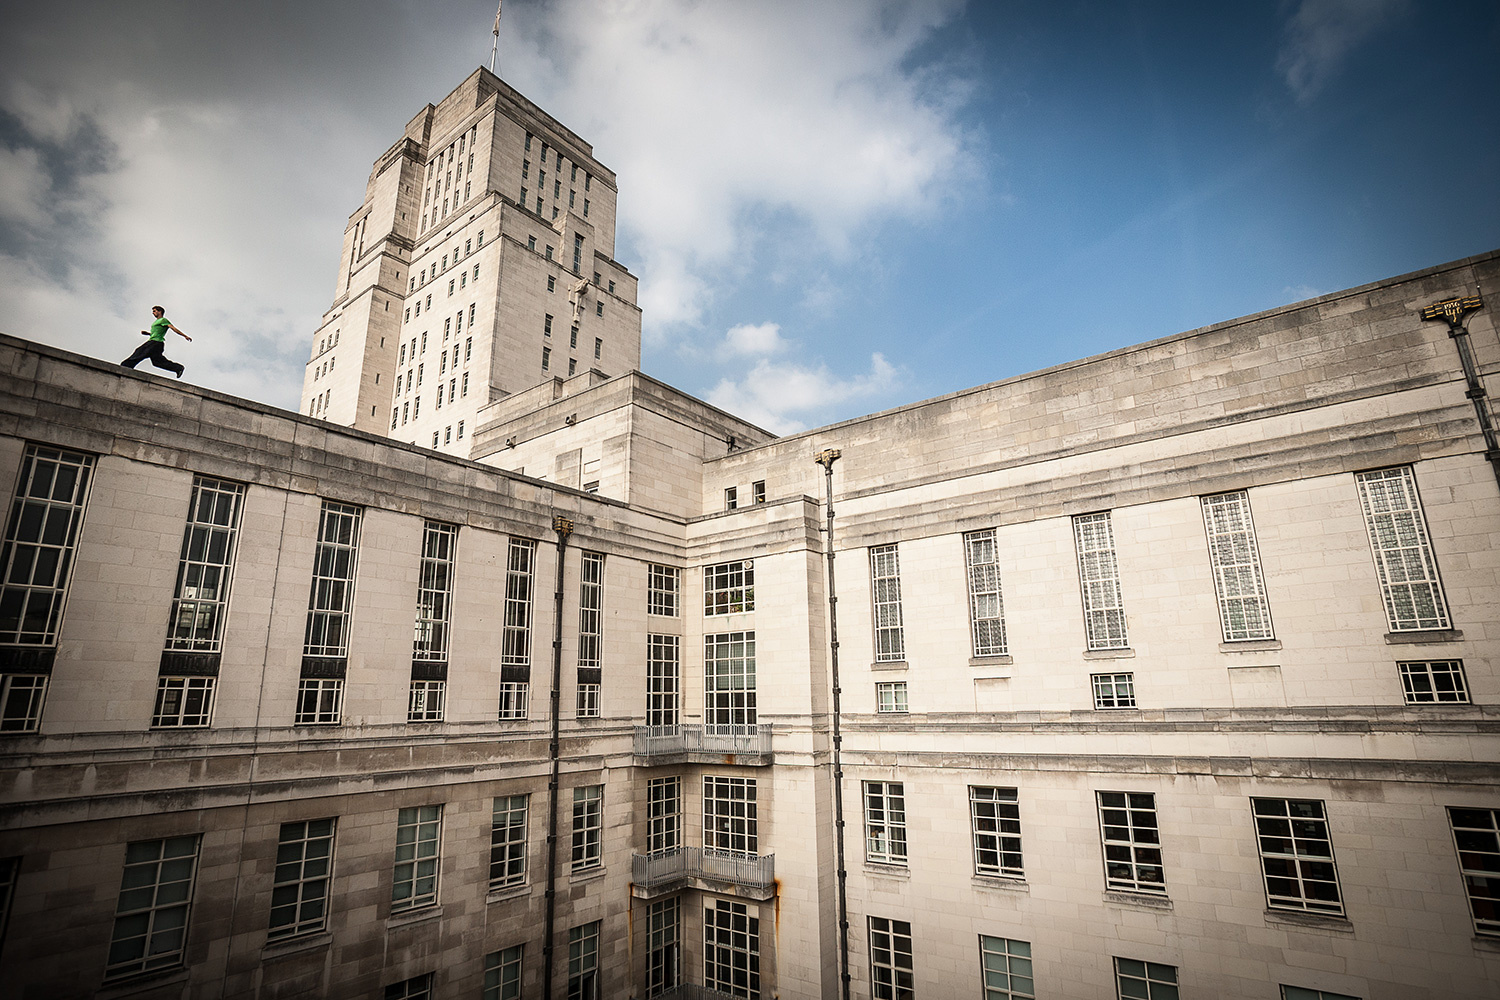 Flynn and Senate House by Andy Day